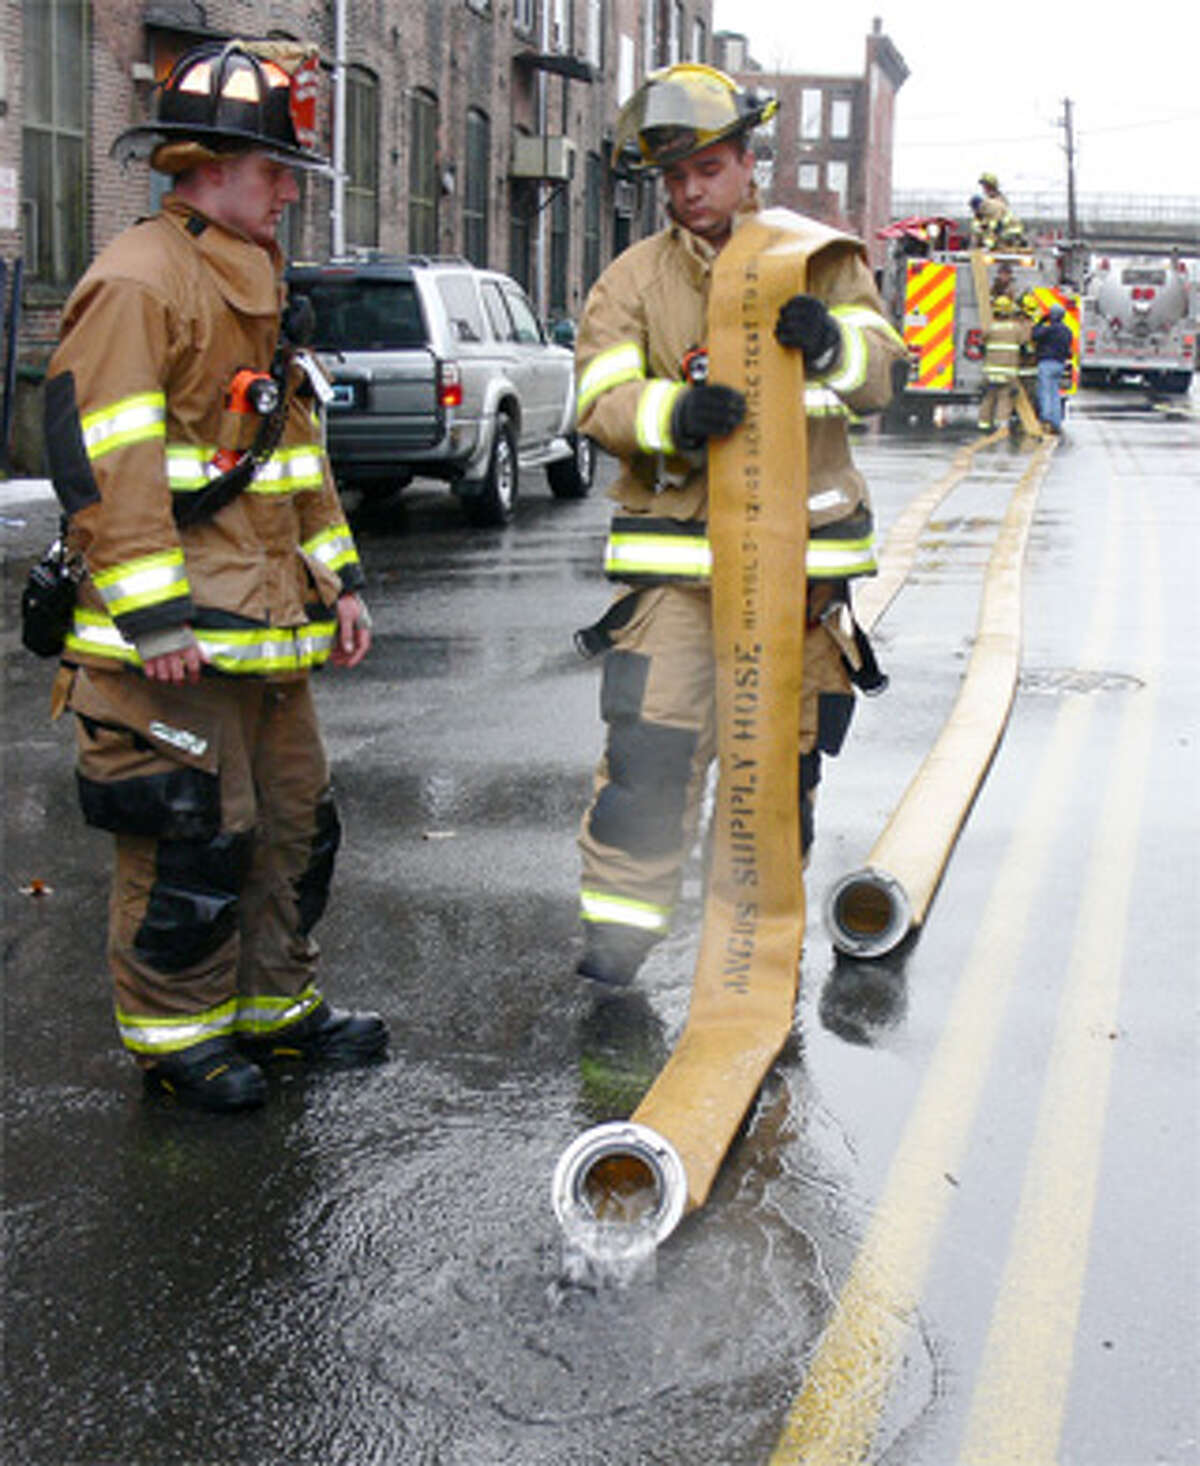 Two Shelton volunteer firefighters empty water from, and roll up, a fire hose used while battling the downtown Shelton fire on Monday.